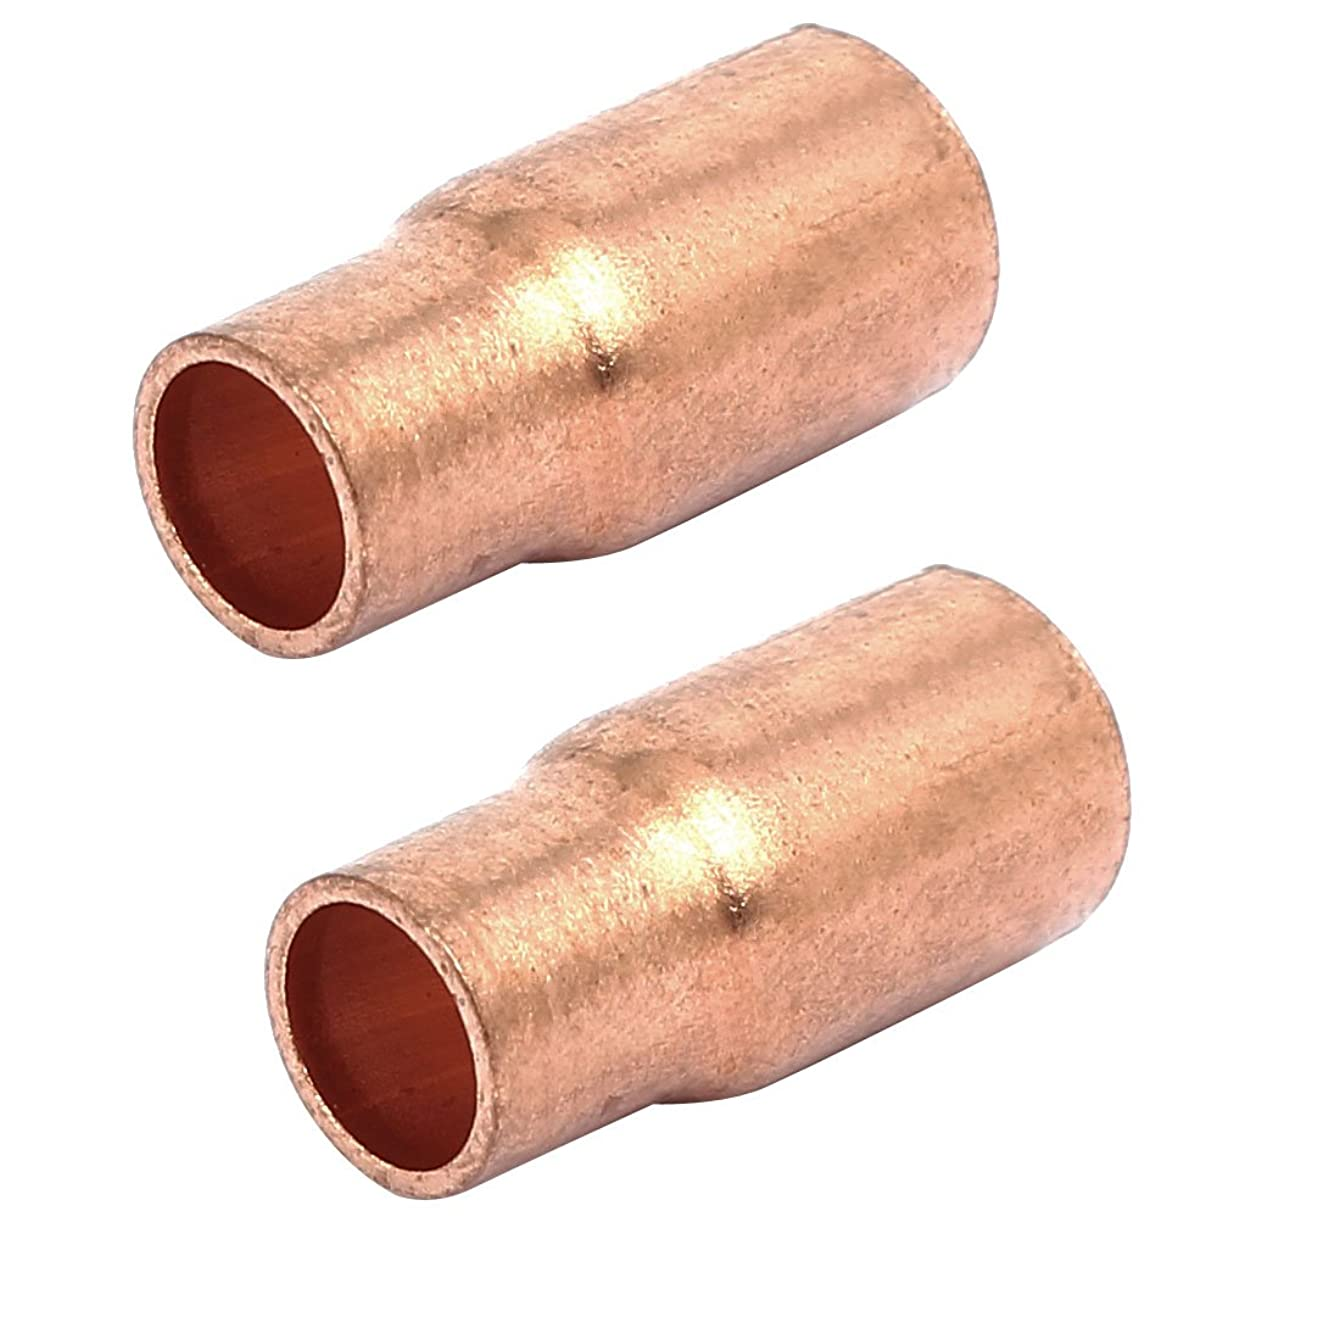 Aexit 8mmx6.35mm Tube Civil Equipment Hardware Accessories Air Conditioner Copper Reducer Straight Fittings 2pcs Model:92as122qo459